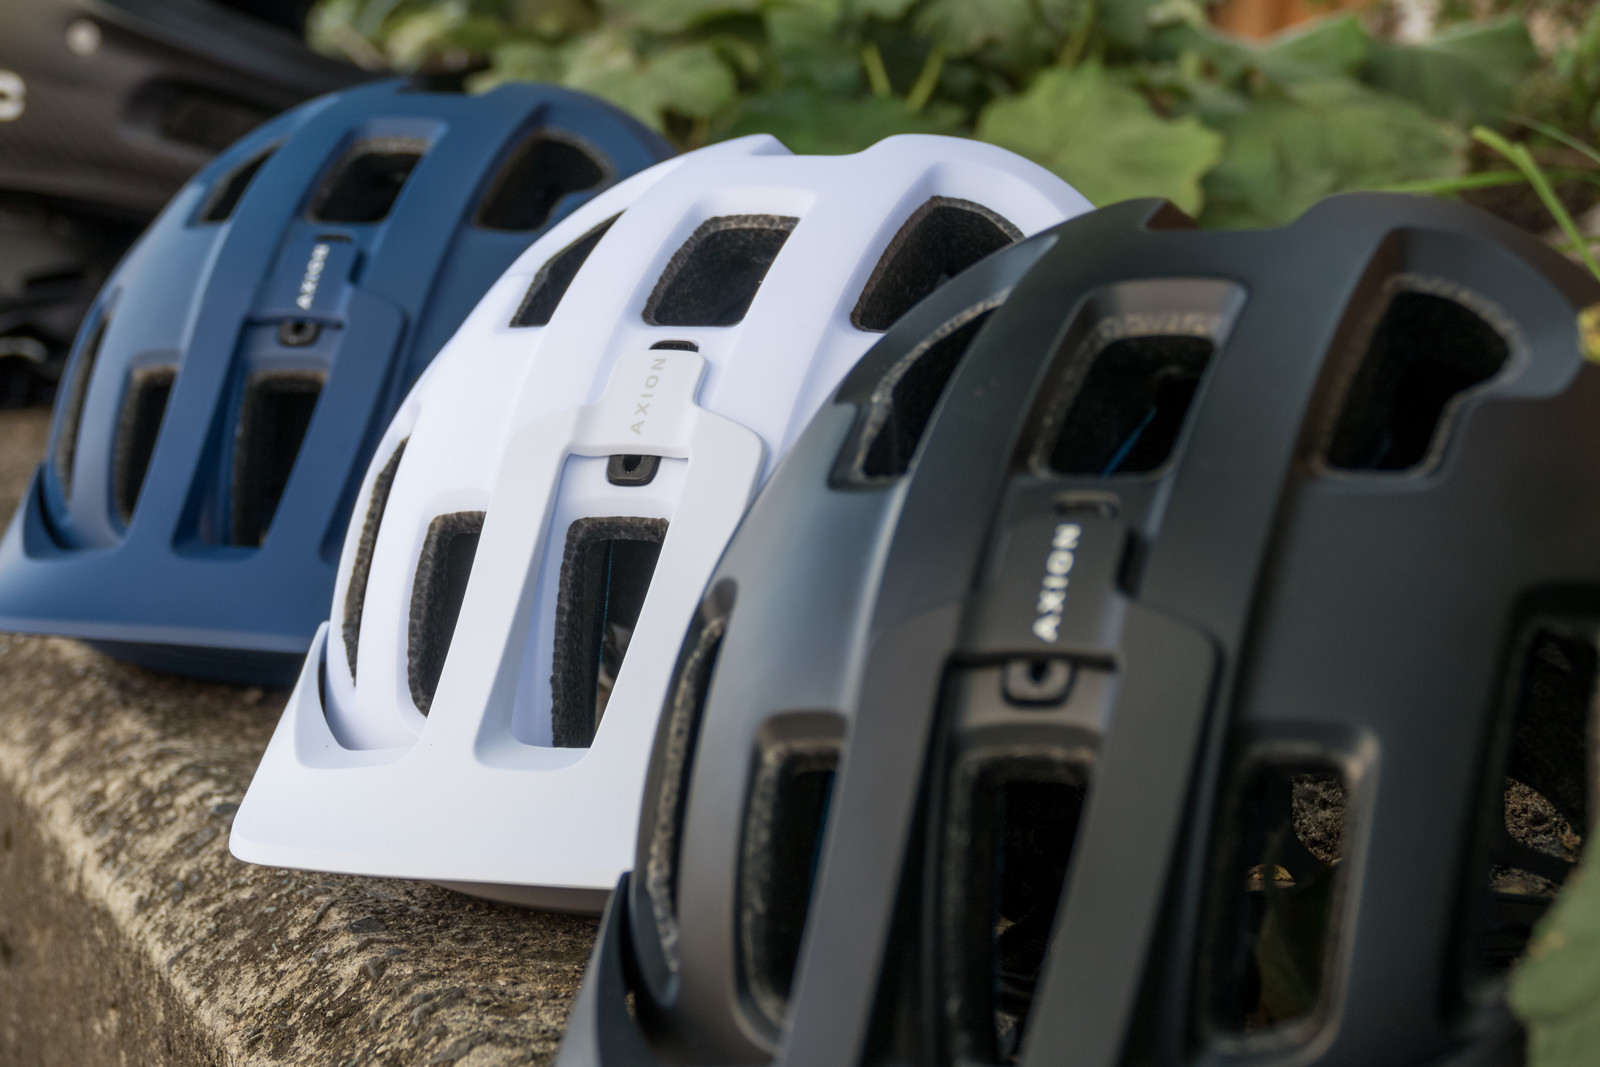 POC Axion Helmet - PIT BITS - 2019 Crankworx Whistler Bikes and Tech - Mountain Biking Pictures - Vital MTB